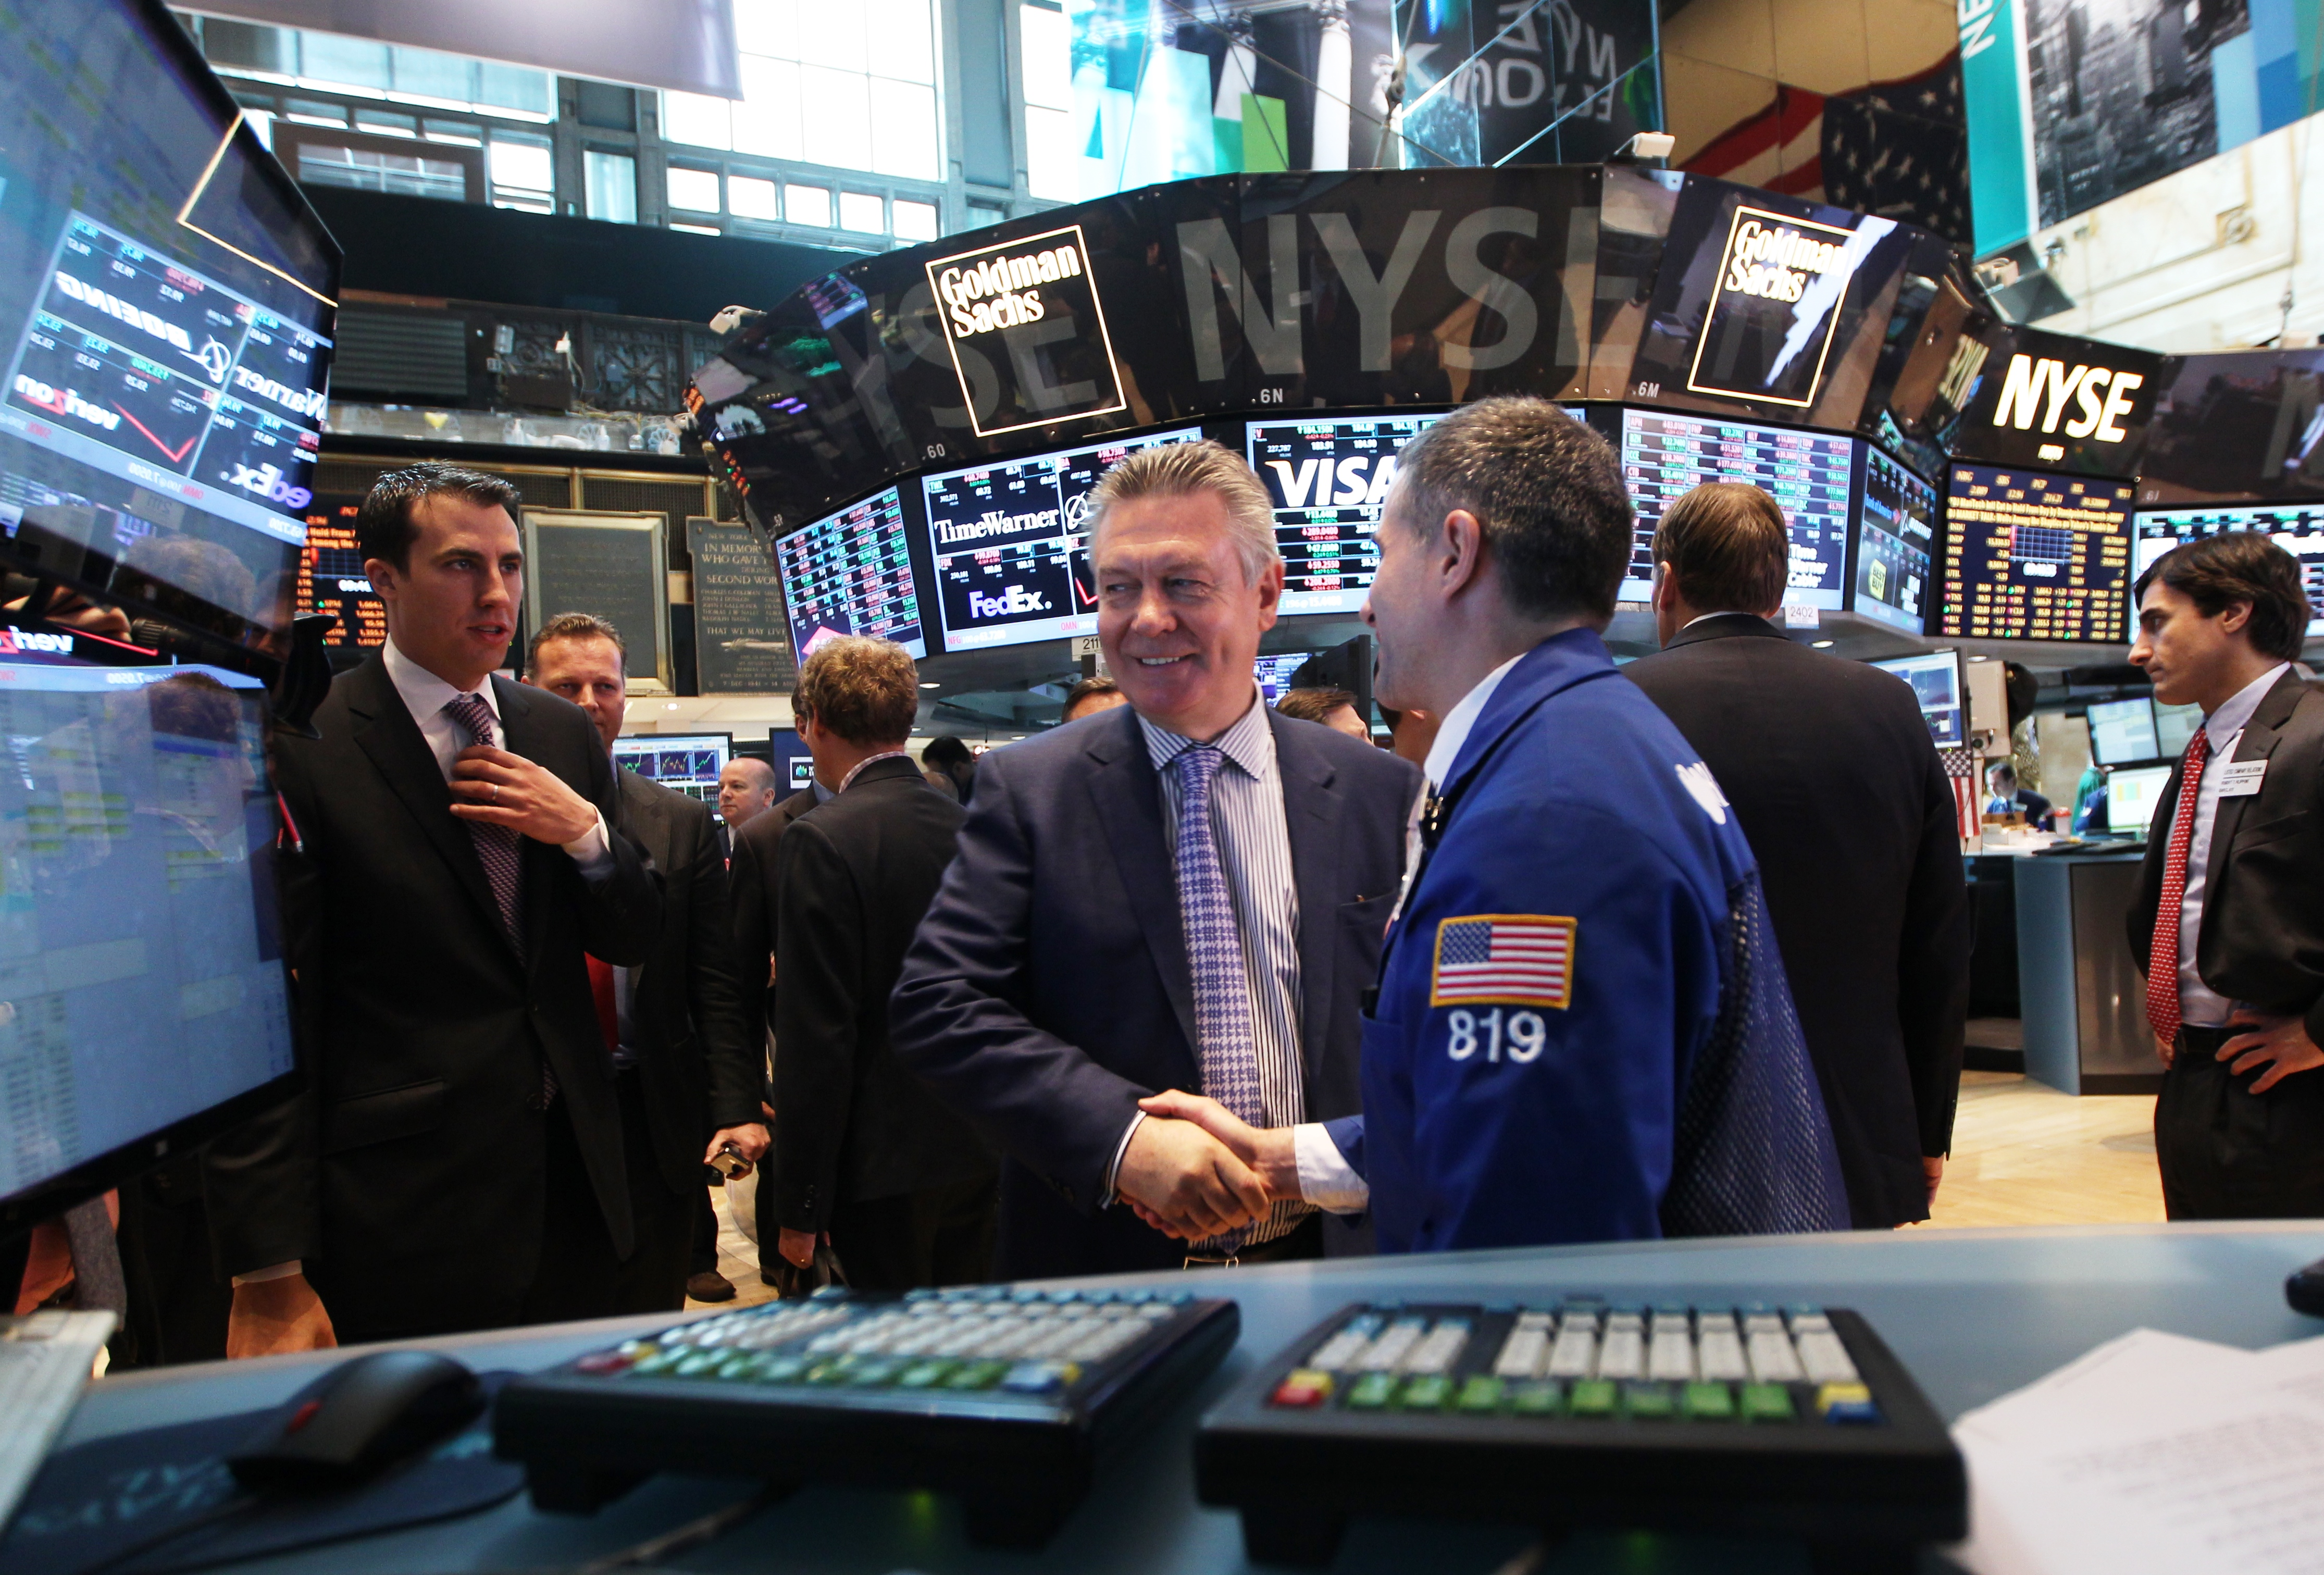 EU Trade Commissioner de Gucht at the New York Stock Exchange. The Commission has teamed up with the financial sector in the EU and US to make financial regulation part of trade negotiations.